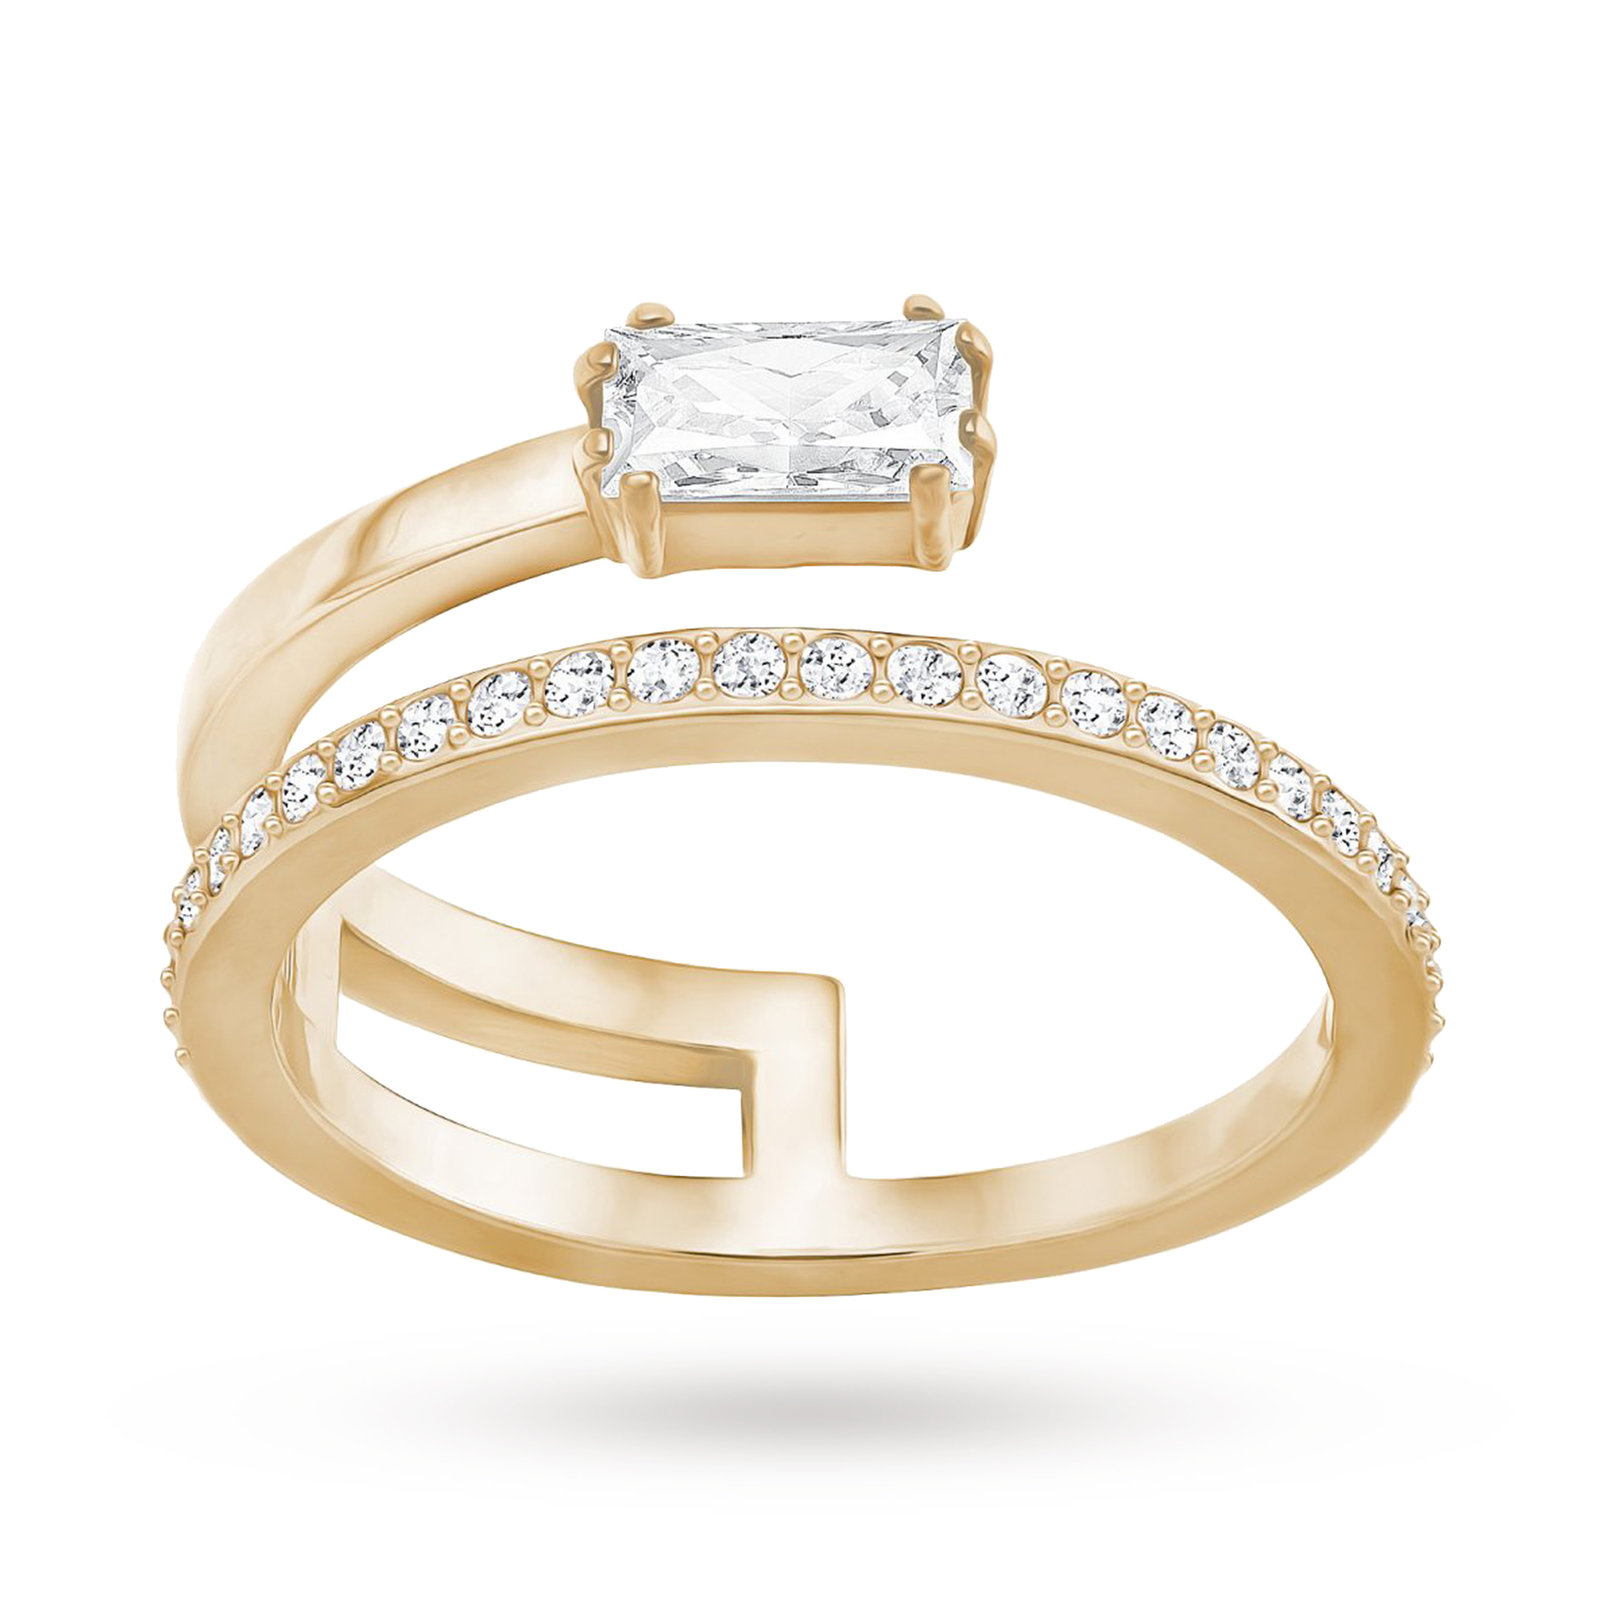 round ct diamanten ros click gold bagues peekaboo morganit brillant en total morganite jewellery to fine enlarge z schliff rose vs ring bucherer ch ringe rund ringgr h rings cut with sse